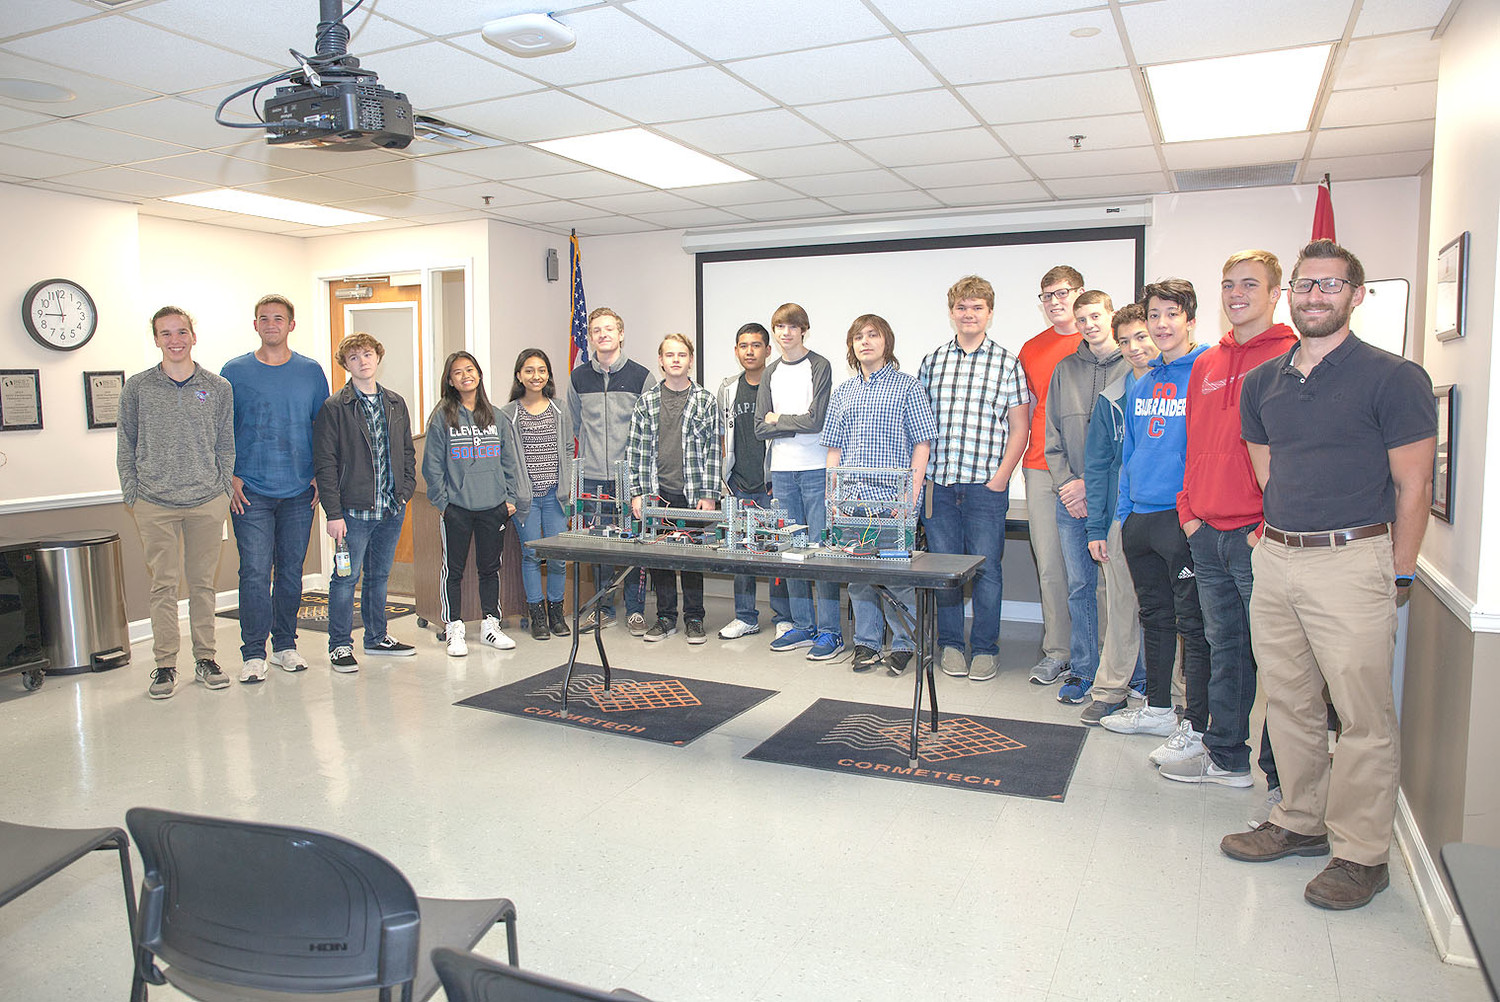 THE CLEVELAND HIGH SCHOOL engineering students and teacher Ben Williams pose for a group photo before embarking on their tour of the Cormetech facility on Friday.